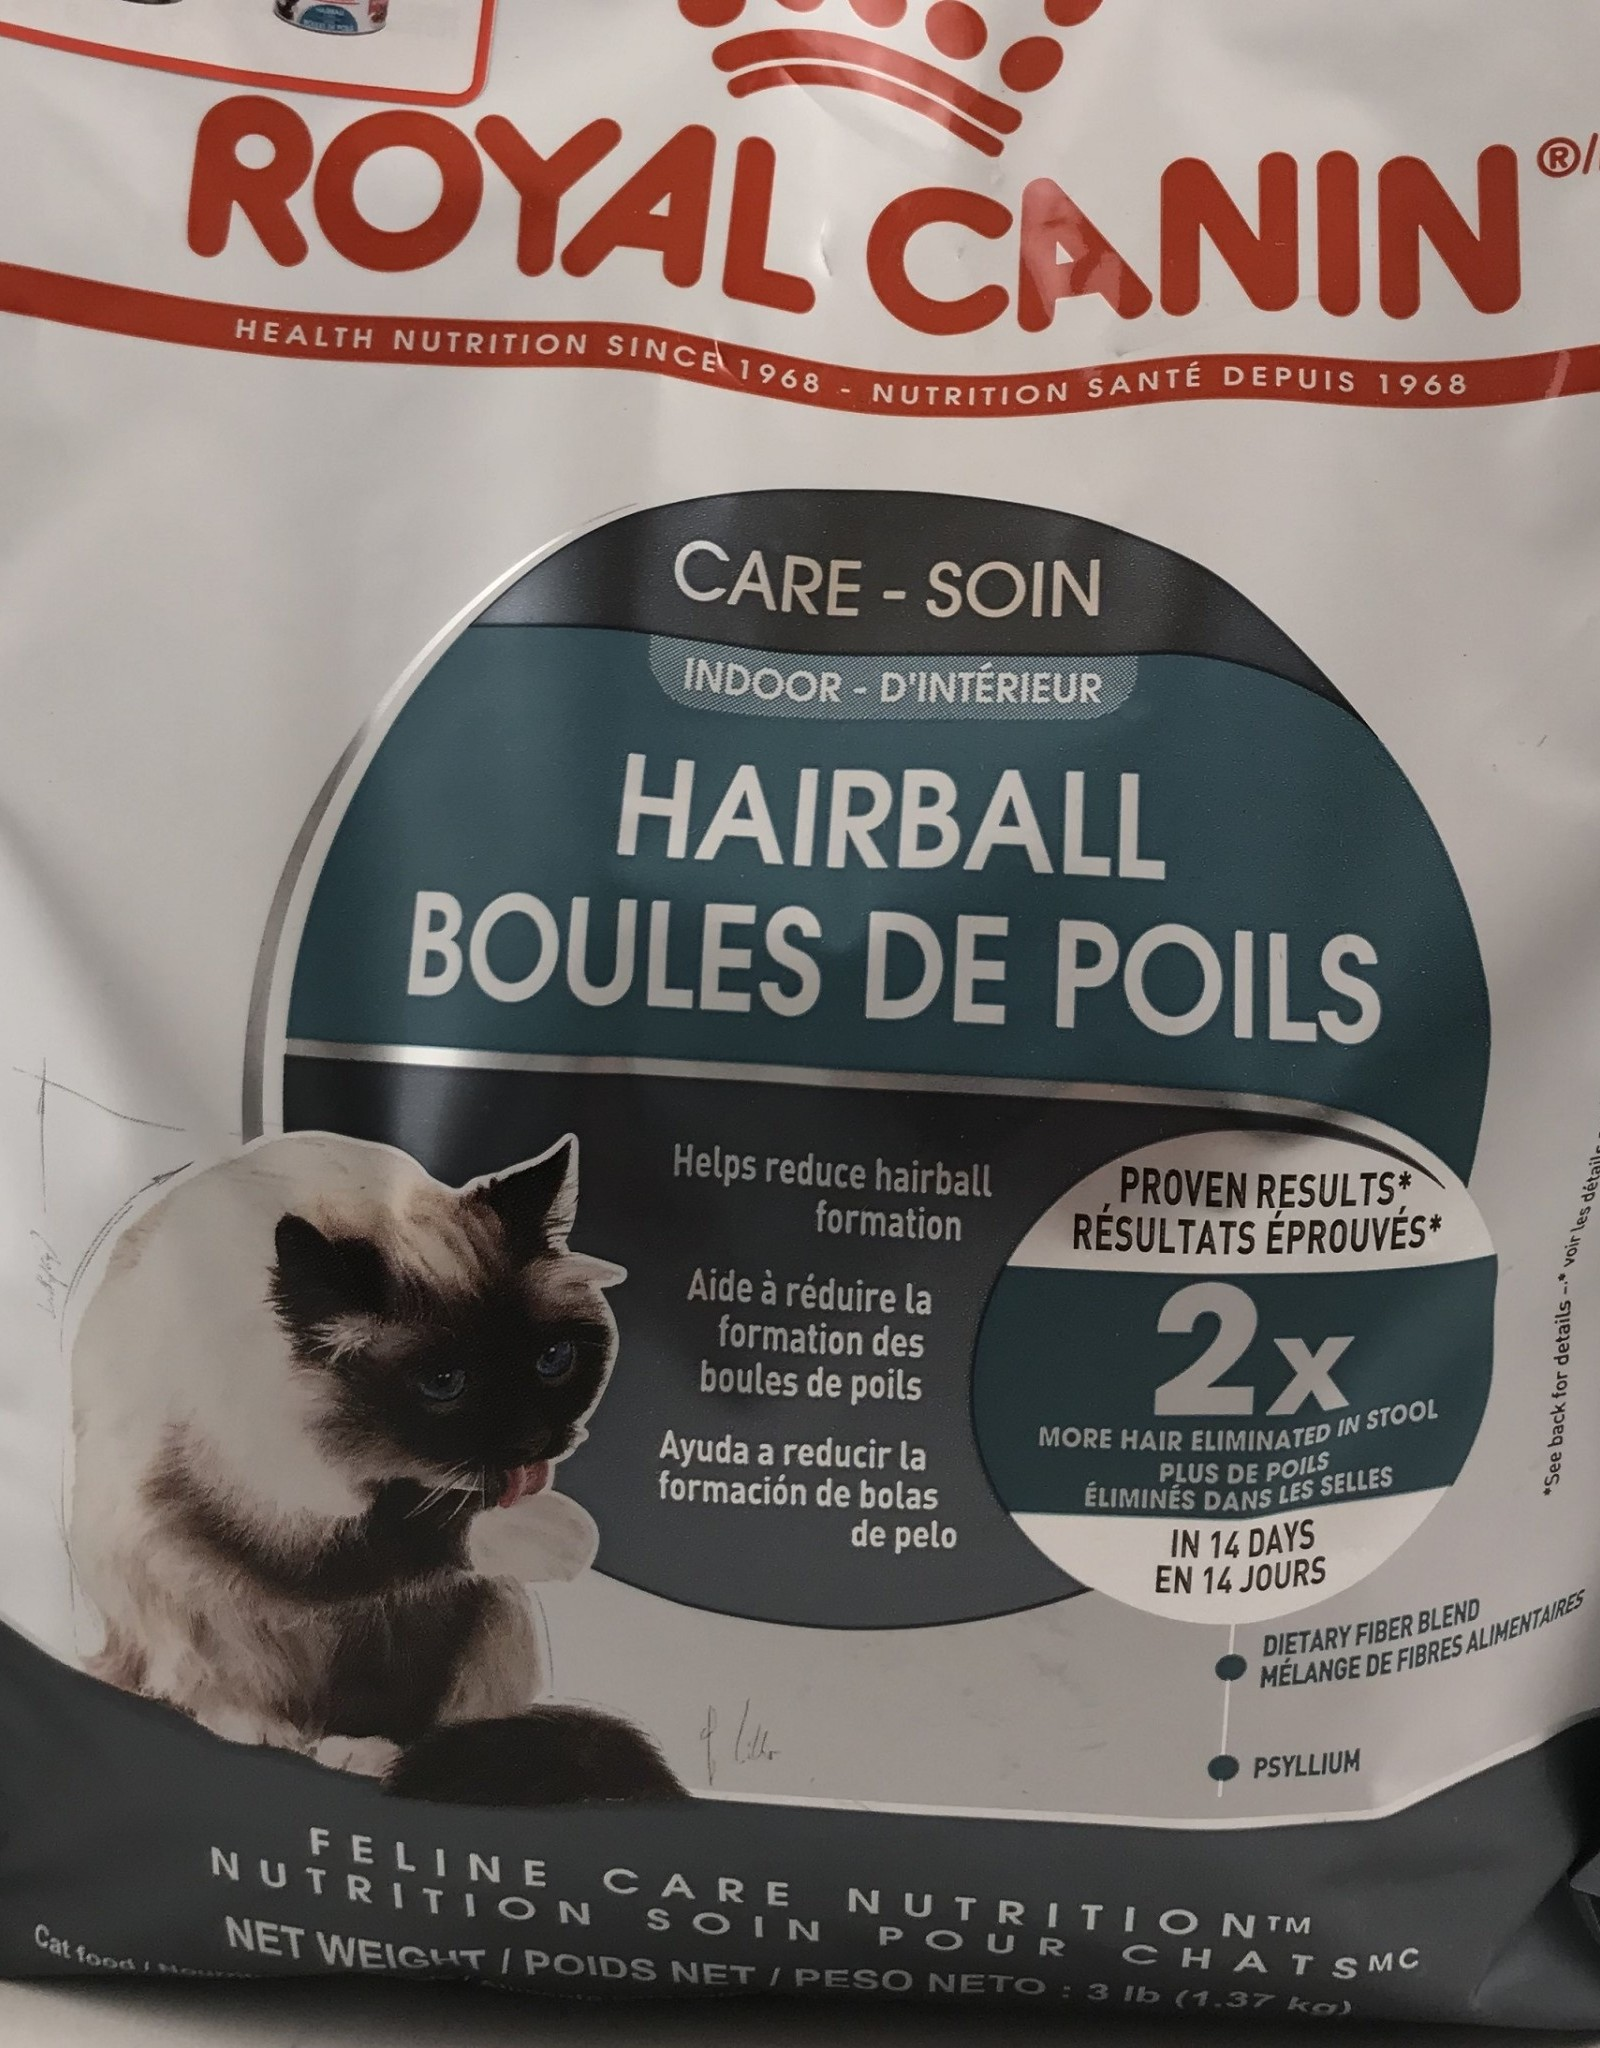 royal canin Royal Canin Hairball 3lb